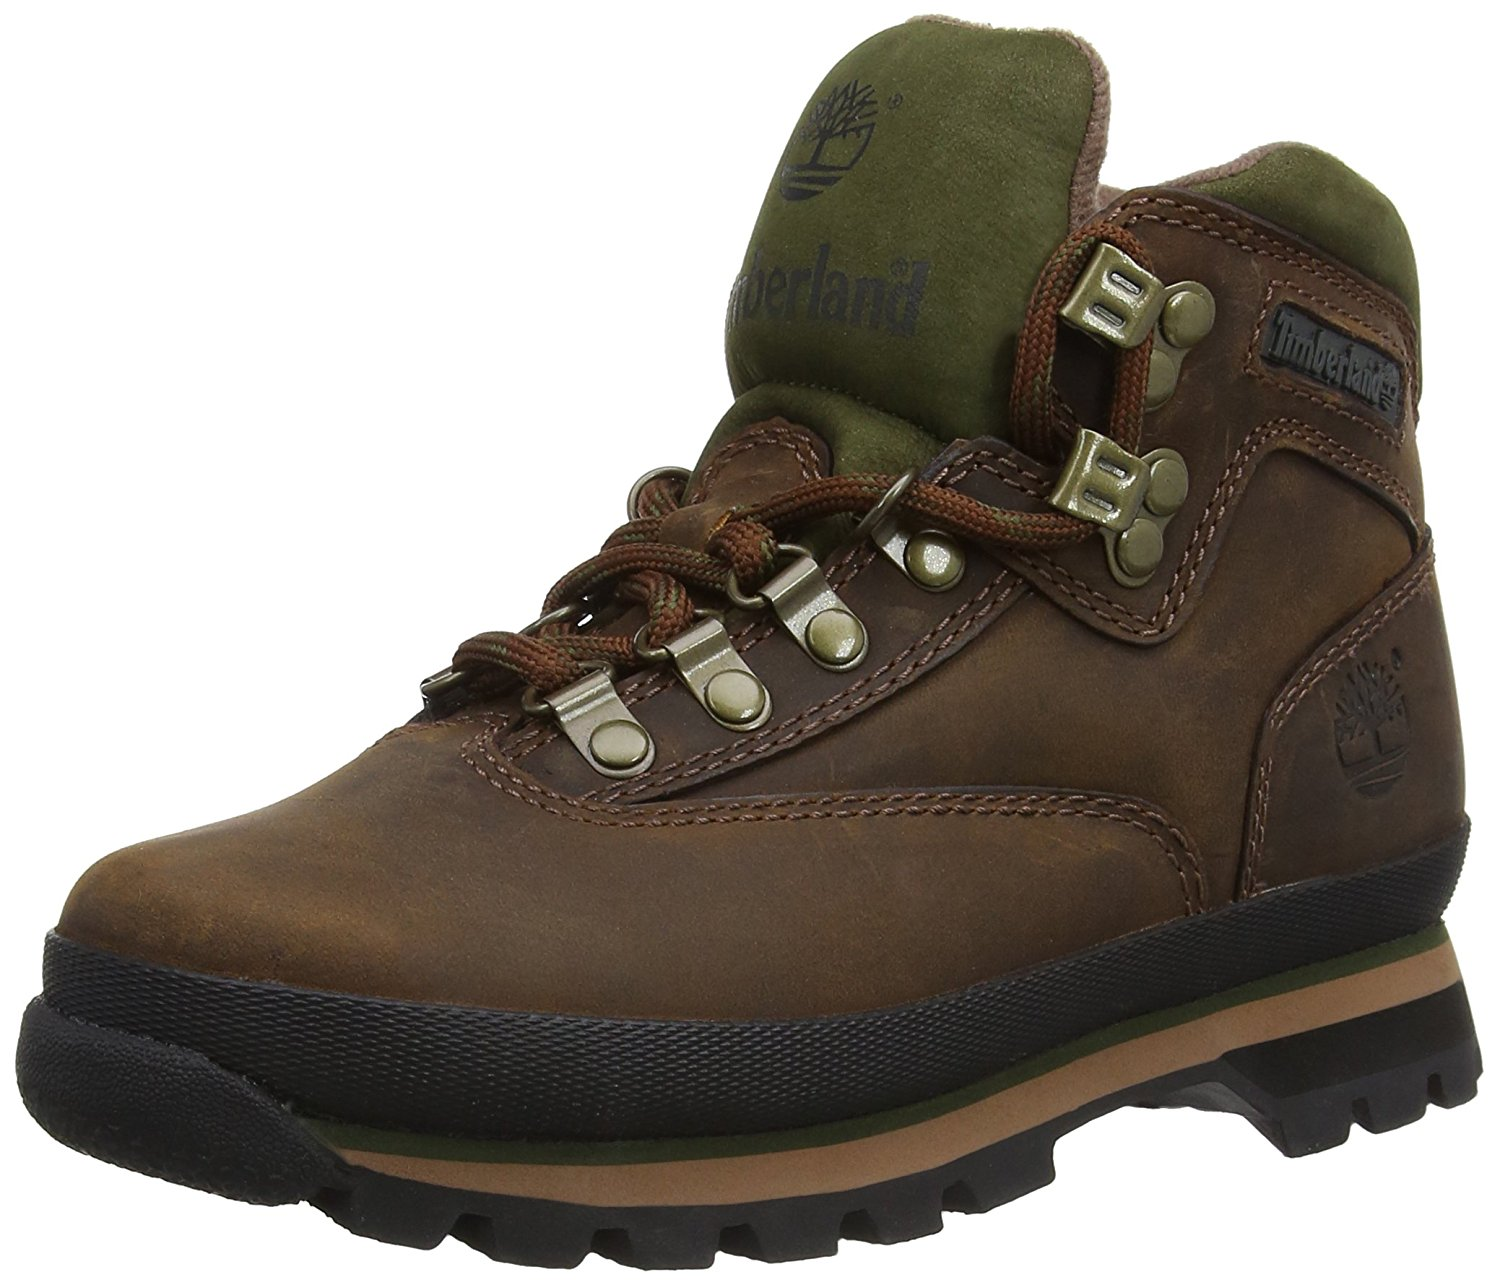 1717c3cdf04 Cheap Timberland Euro Hiker Boot, find Timberland Euro Hiker Boot ...